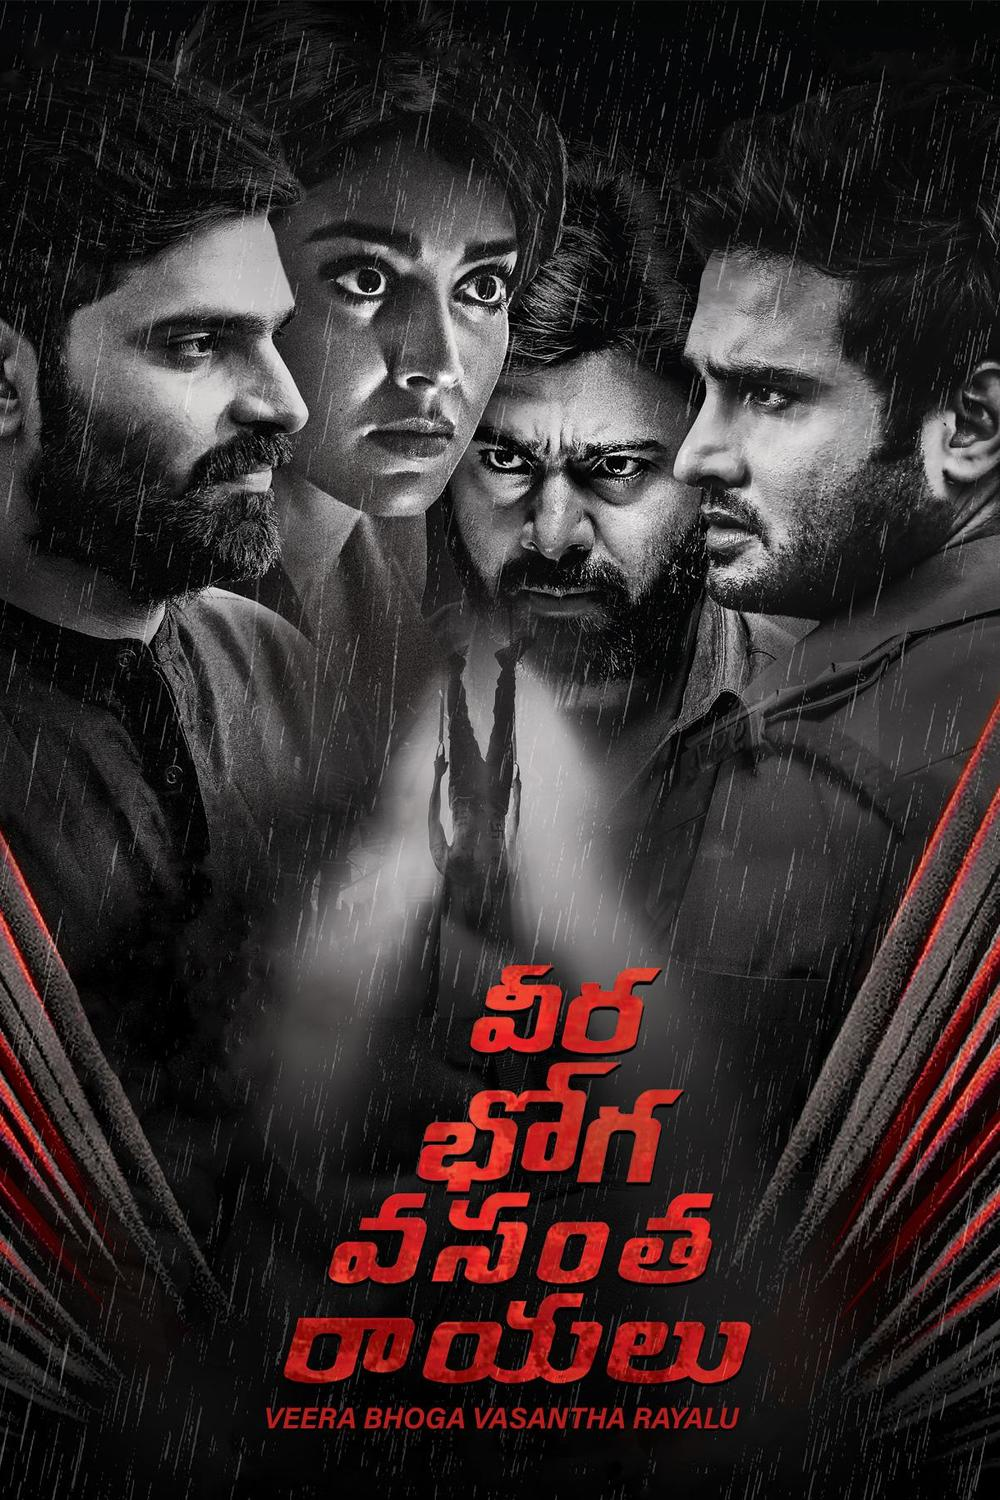 Veera Bhoga Vasantha Rayalu 2018 Hindi Dual Audio 650MB UNCUT HDRip 720p HEVC x265 ESubs Free Download